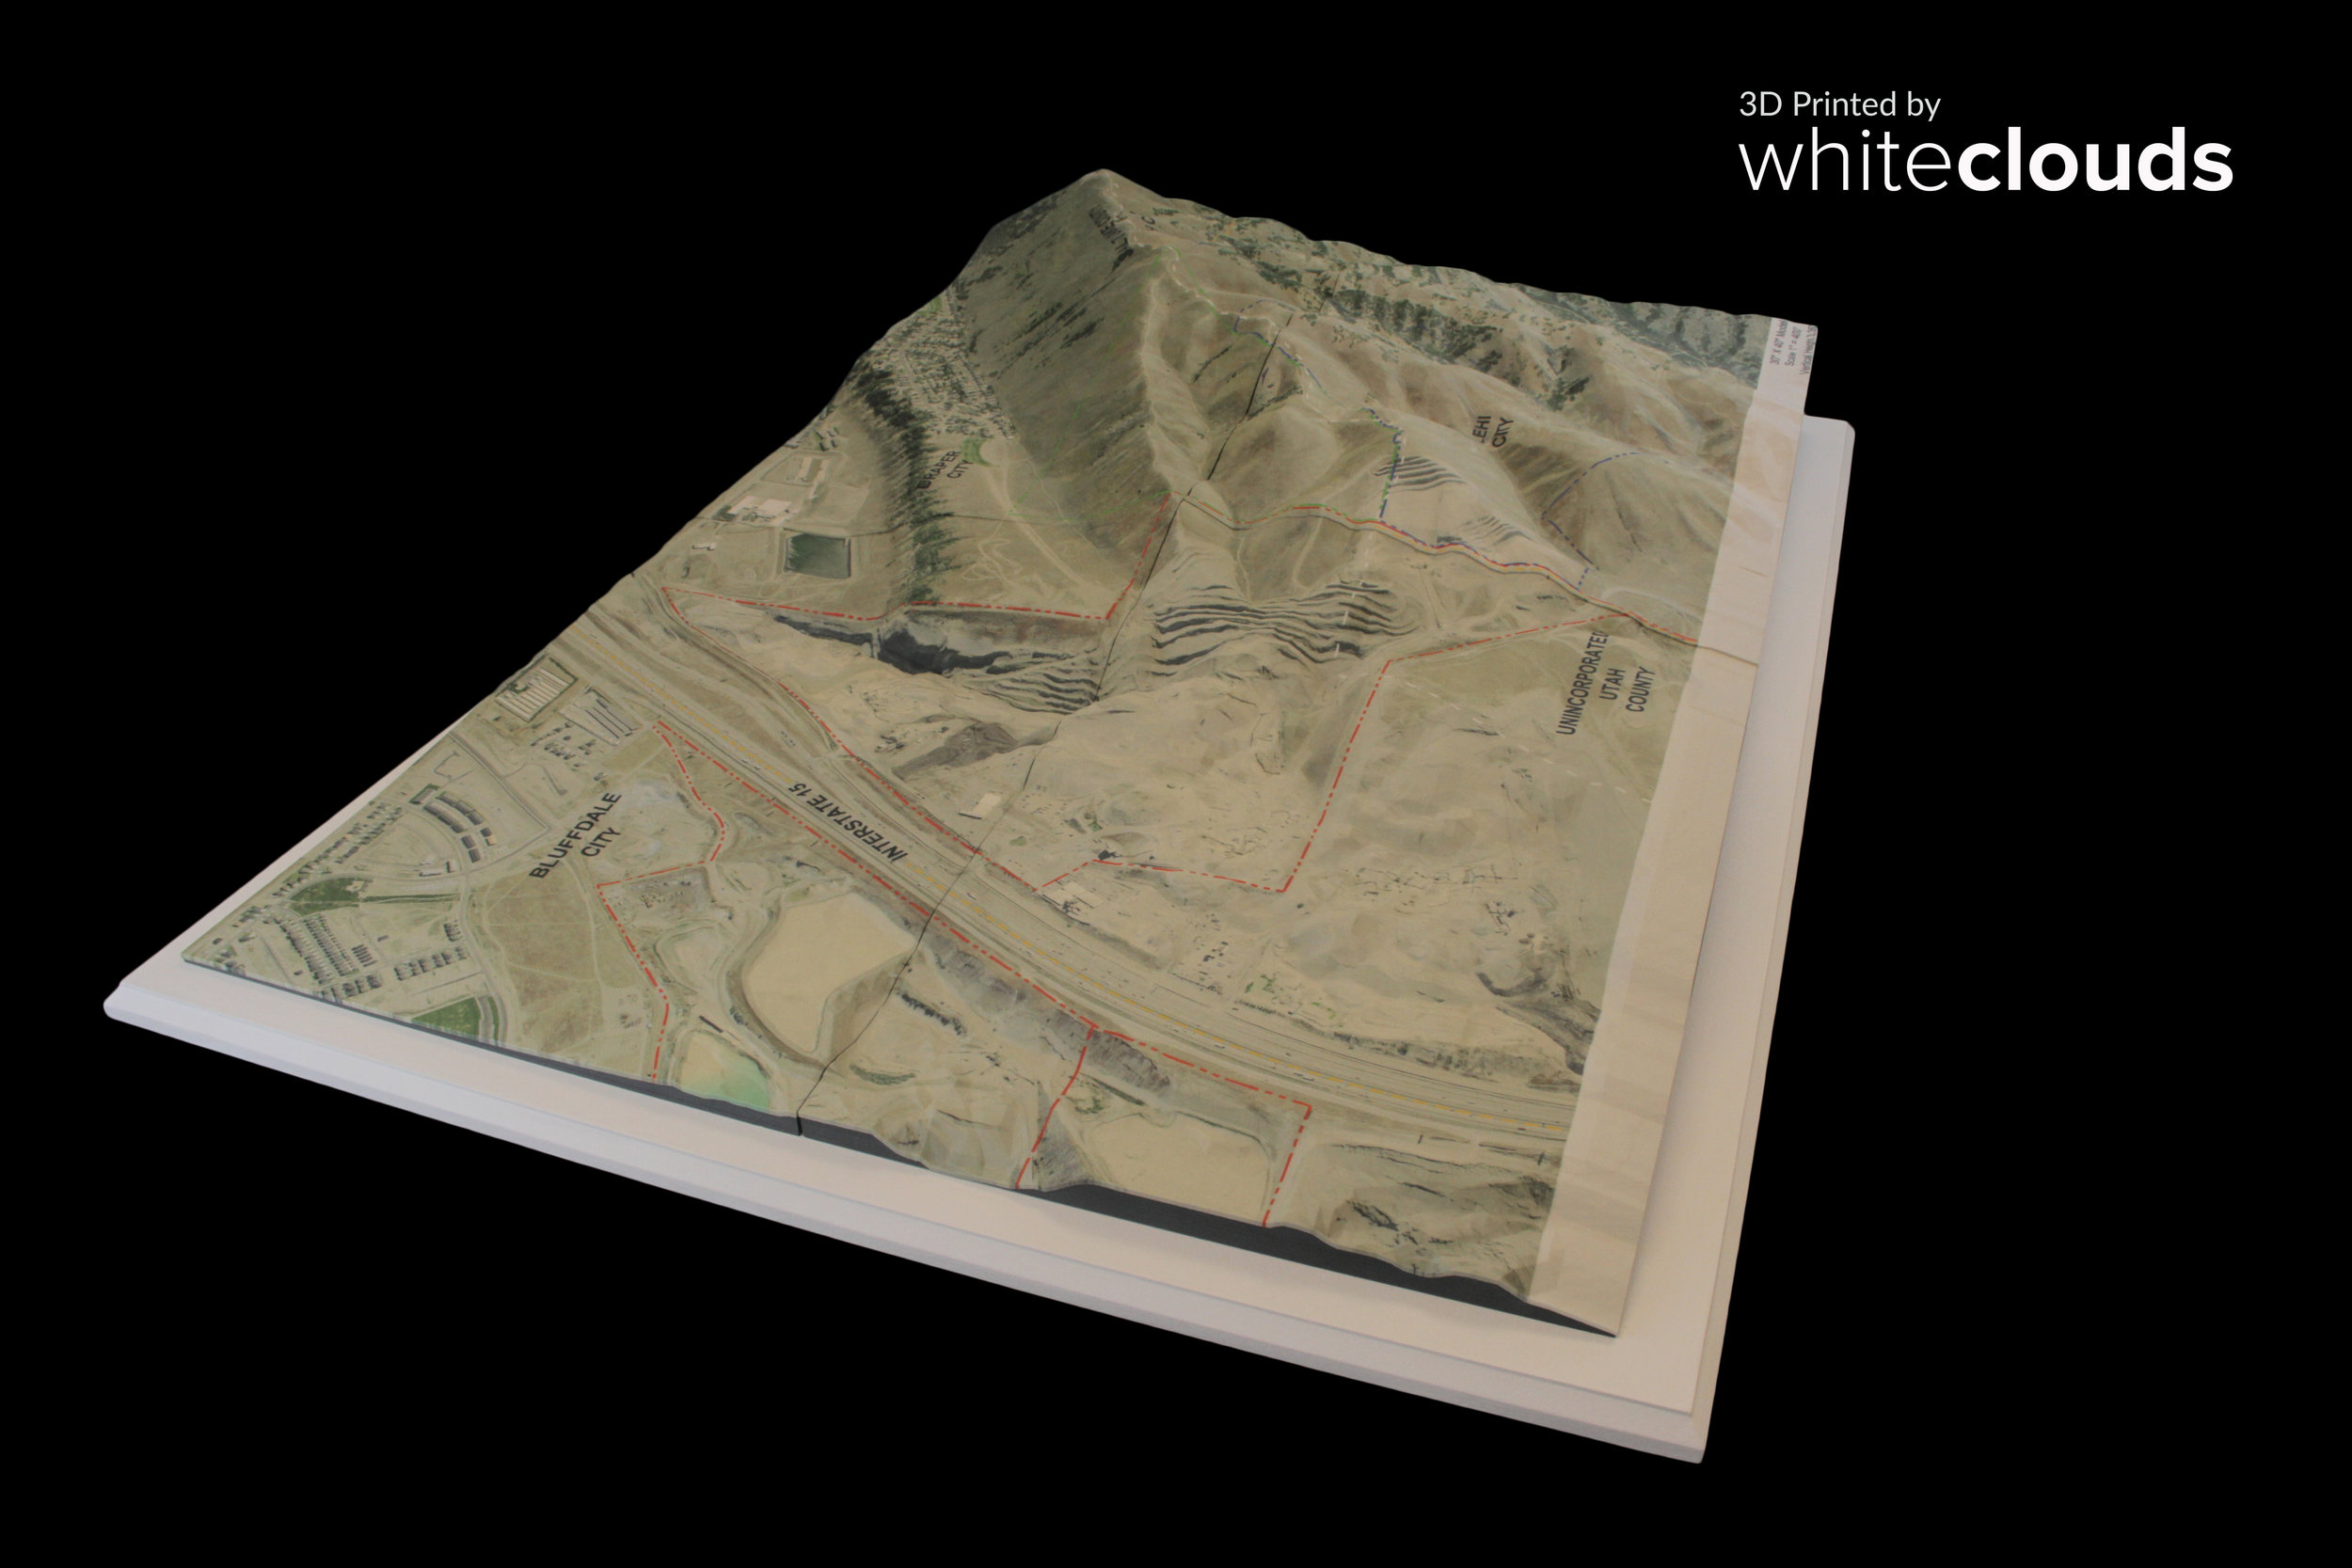 3D-Printed-WhiteClouds-Clyde-Topo-Architecture-Clyde-Topo-Website-1.JPG